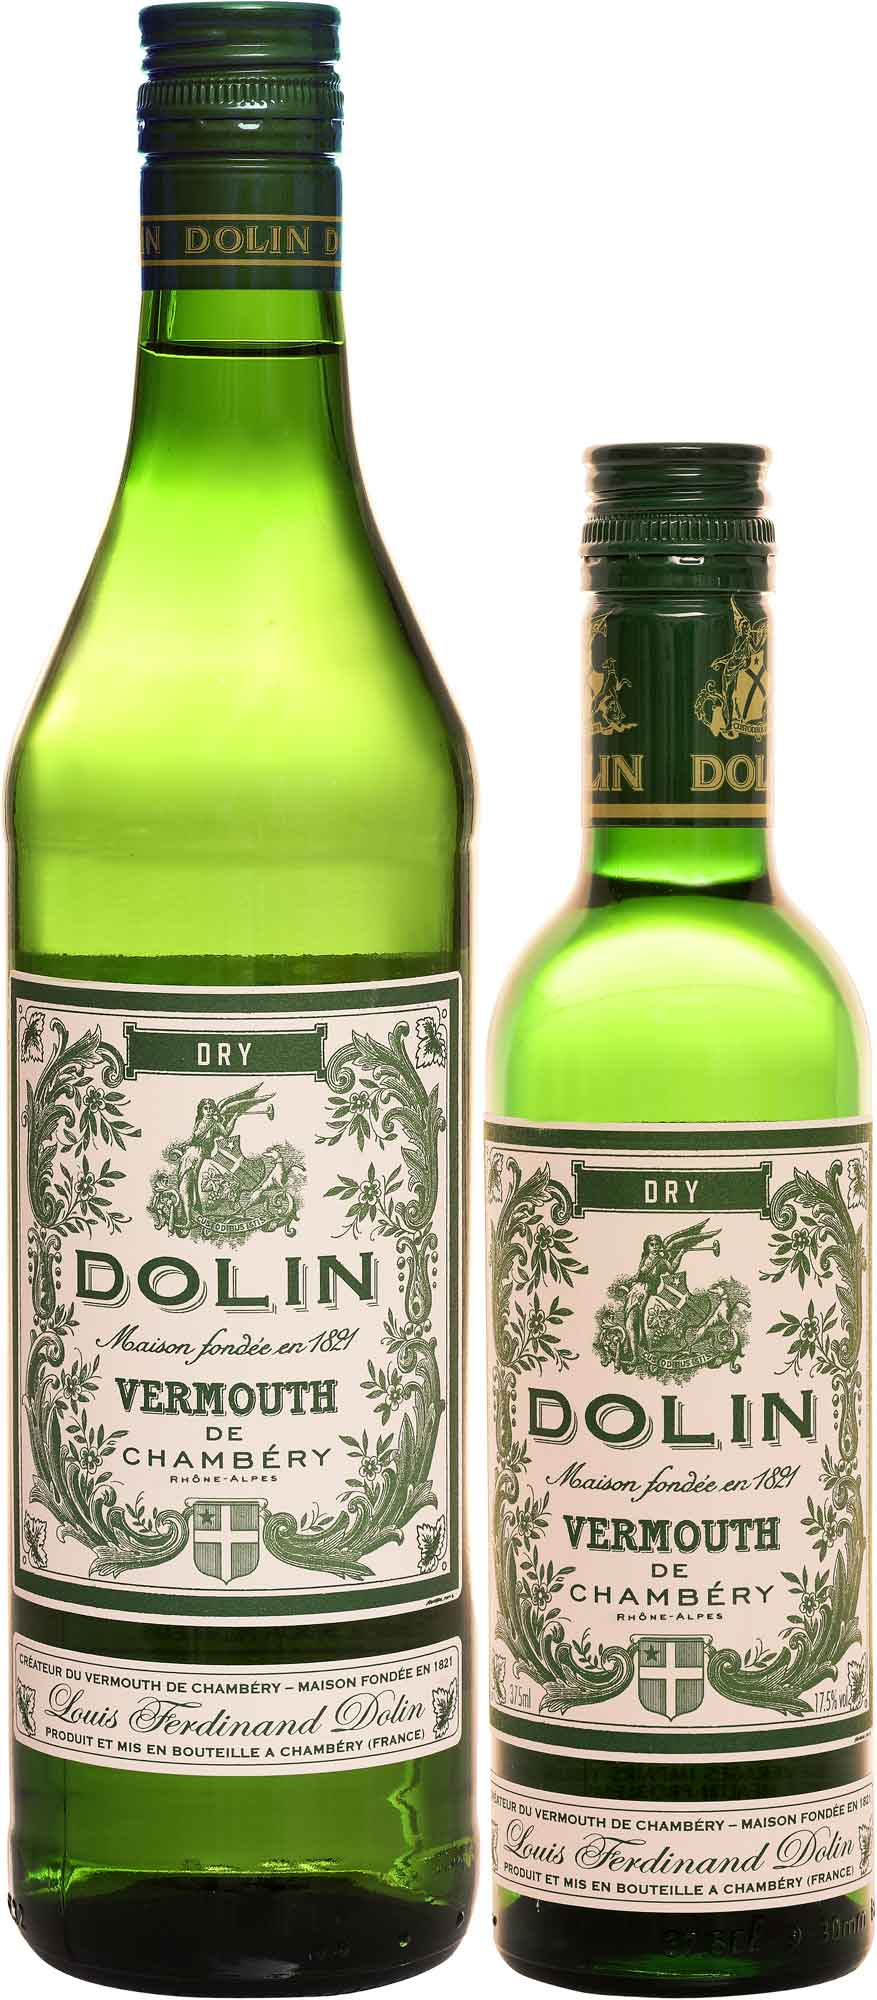 Dolin Dry Vermouth 375ml bottle